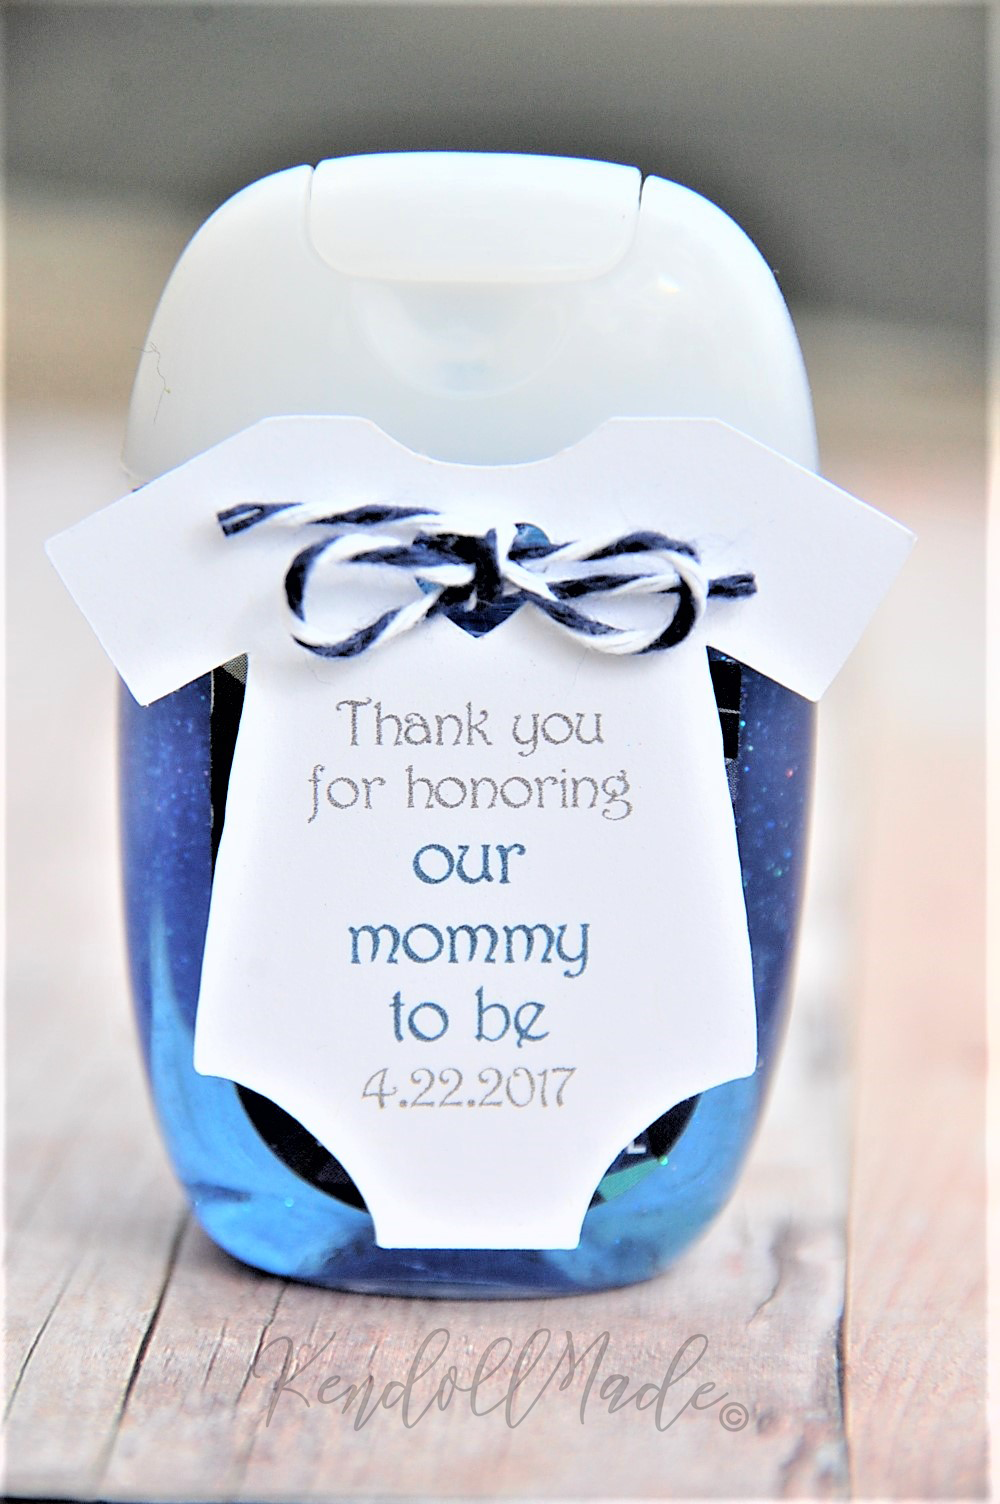 elephant themed favors Thank you favors unique Baby shower favors gender neutral favors Baby shower Favors Personalized affordable